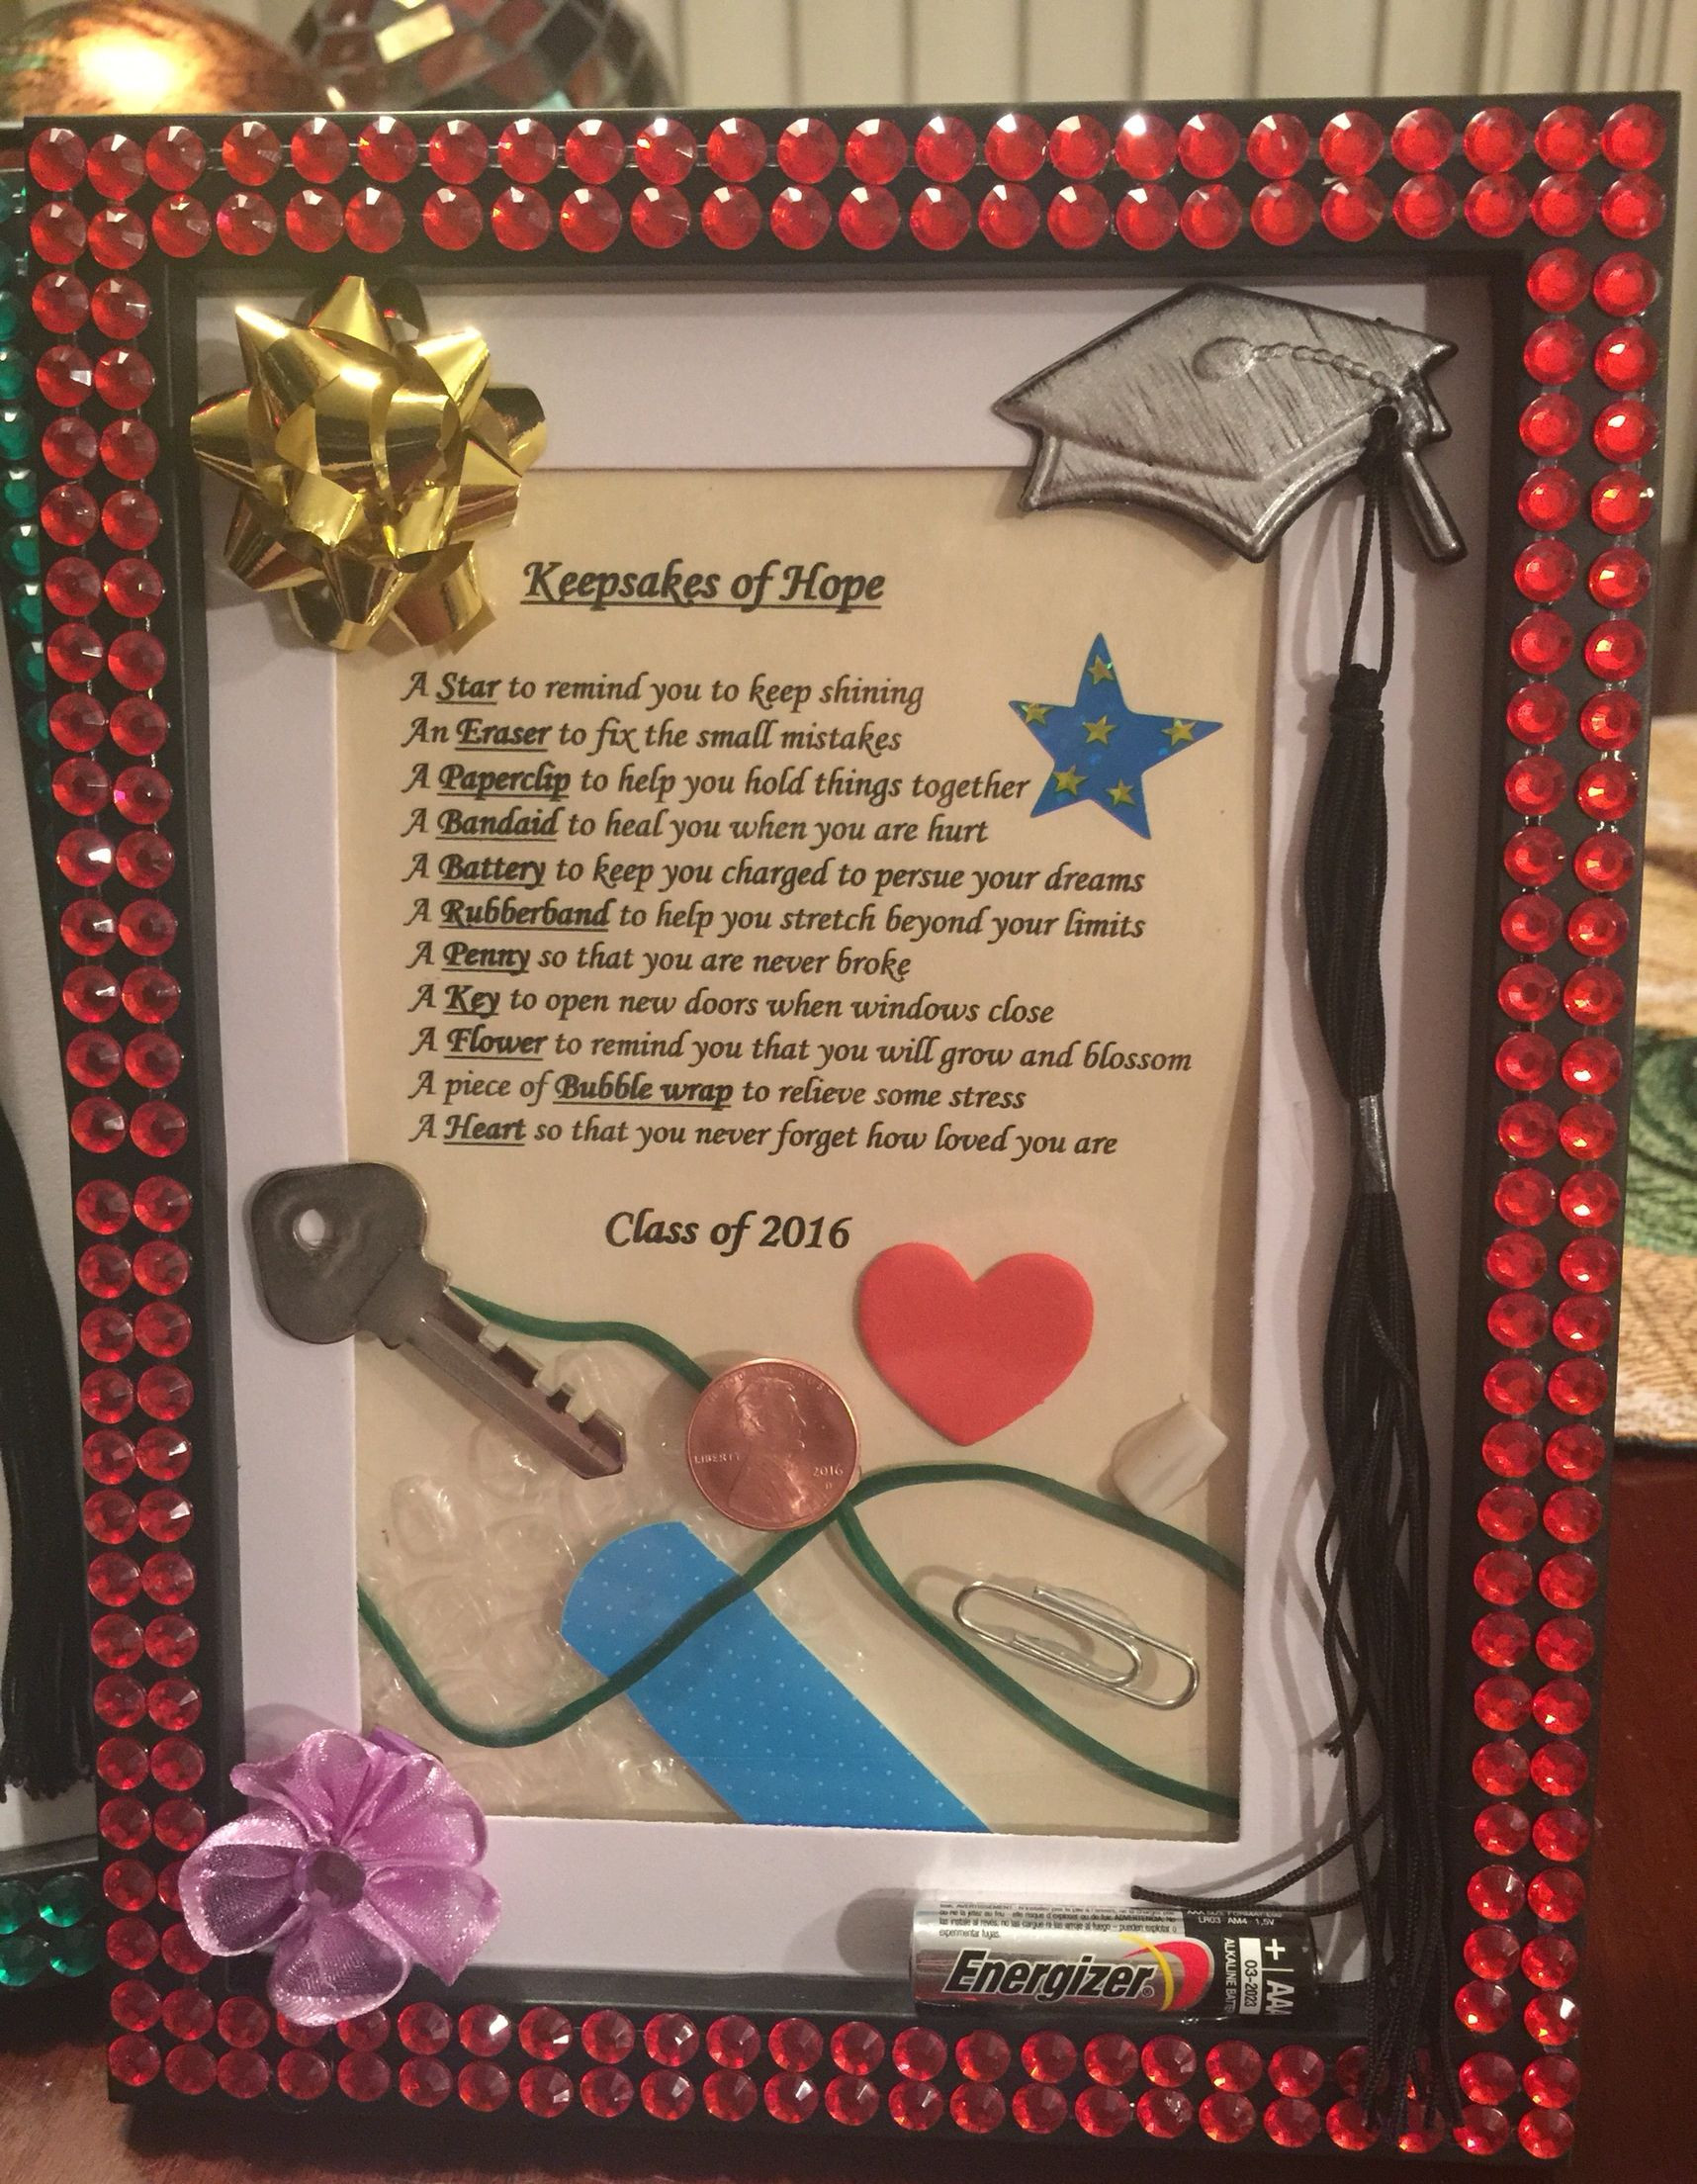 Friends Graduation Gift Ideas  Graduation Gift Keepsakes of hope The perfect DIY